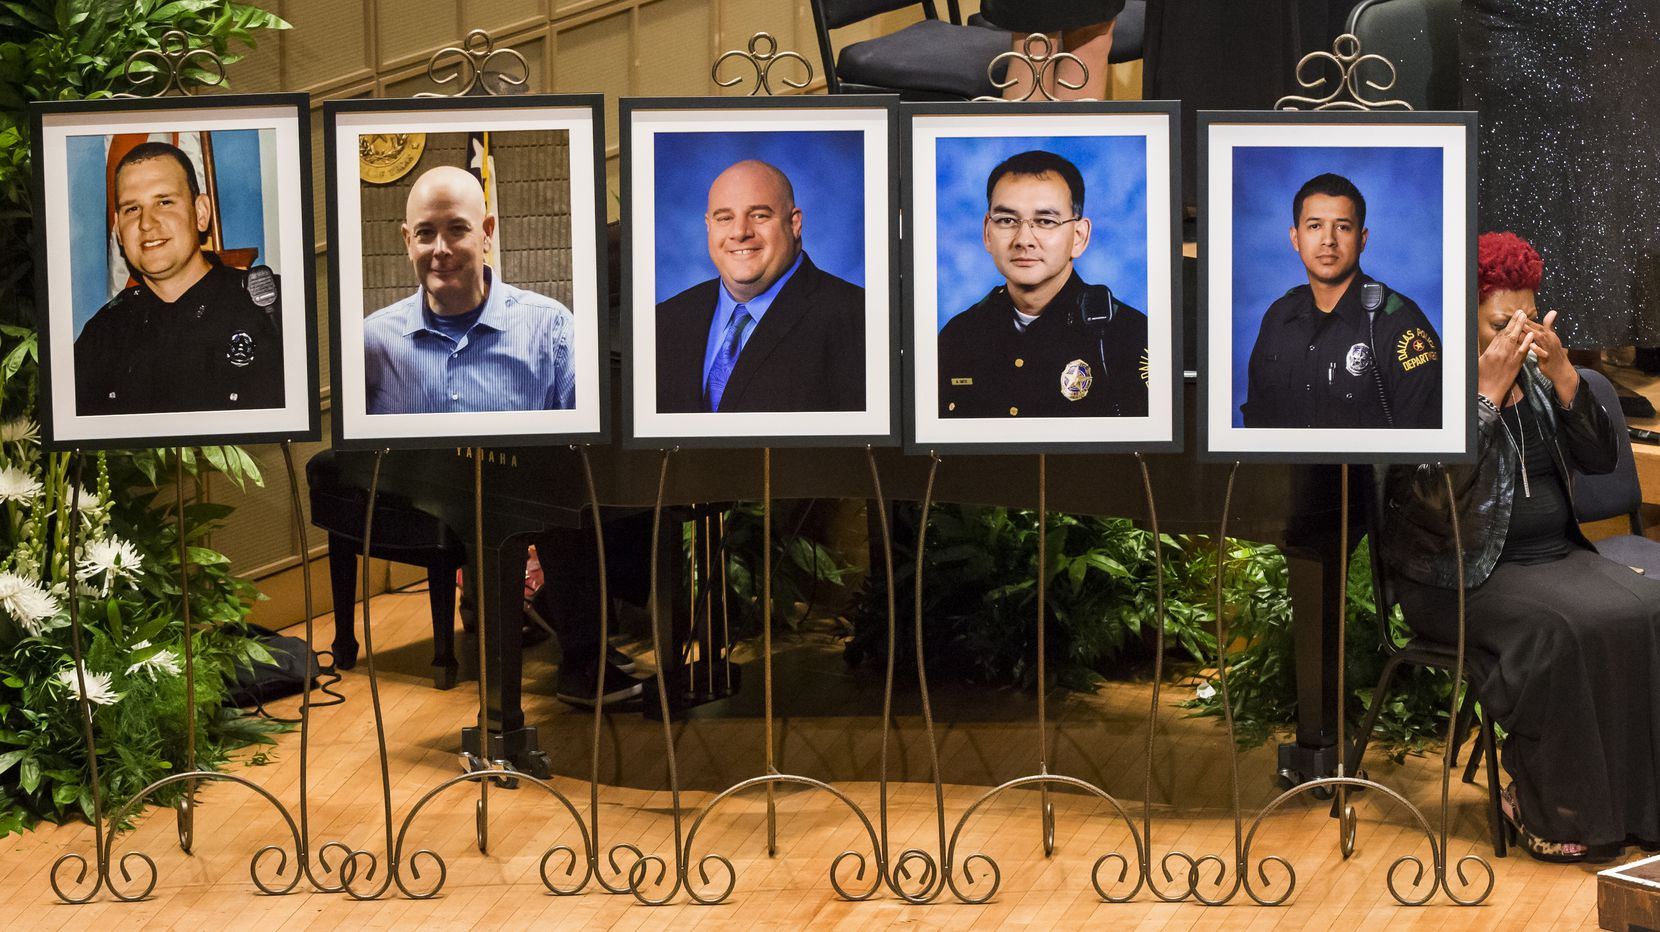 The five officers who died (from left) were Dallas Officer Michael Krol, Dallas Area Rapid Transit Officer Brent Thompson, Dallas Officer Lorne Ahrens, Dallas Officer Michael Smith and Dallas Officer Patrick Zamarripa.